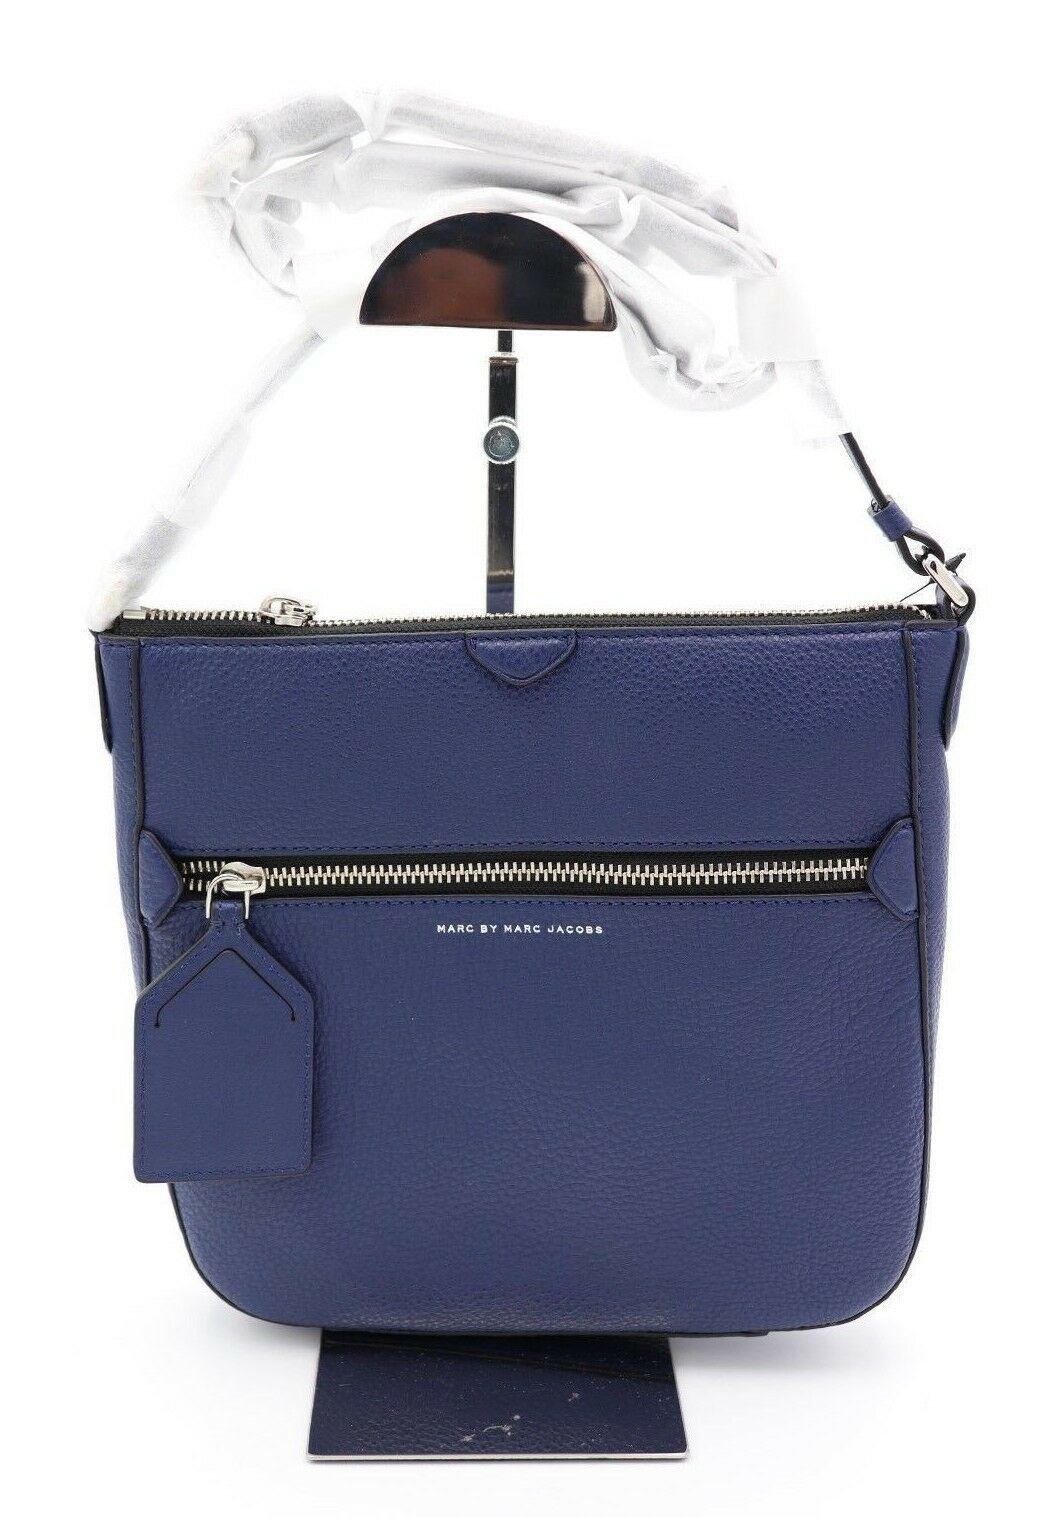 NWT Marc by Marc Jacobs Blue Leather Globetrotter Kit Calley Crossbody Bag $298